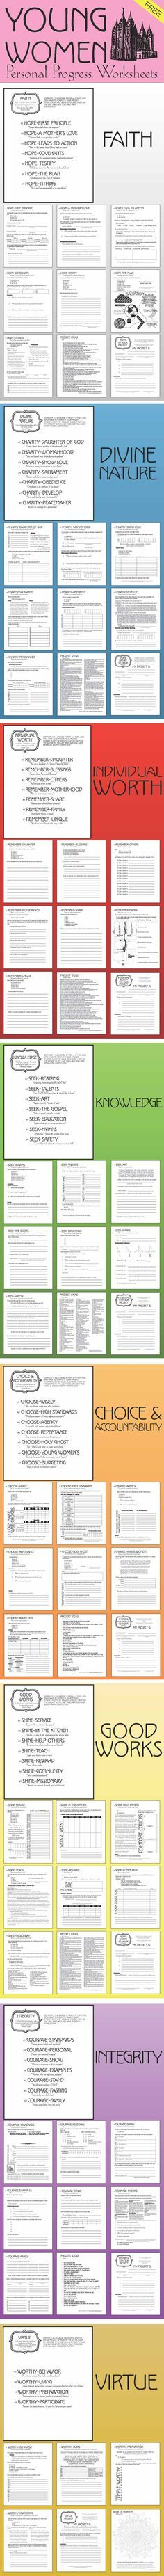 These Personal Progress Worksheets have changed the program in our ward, the girls are loving it! Plus it's FREE!!!